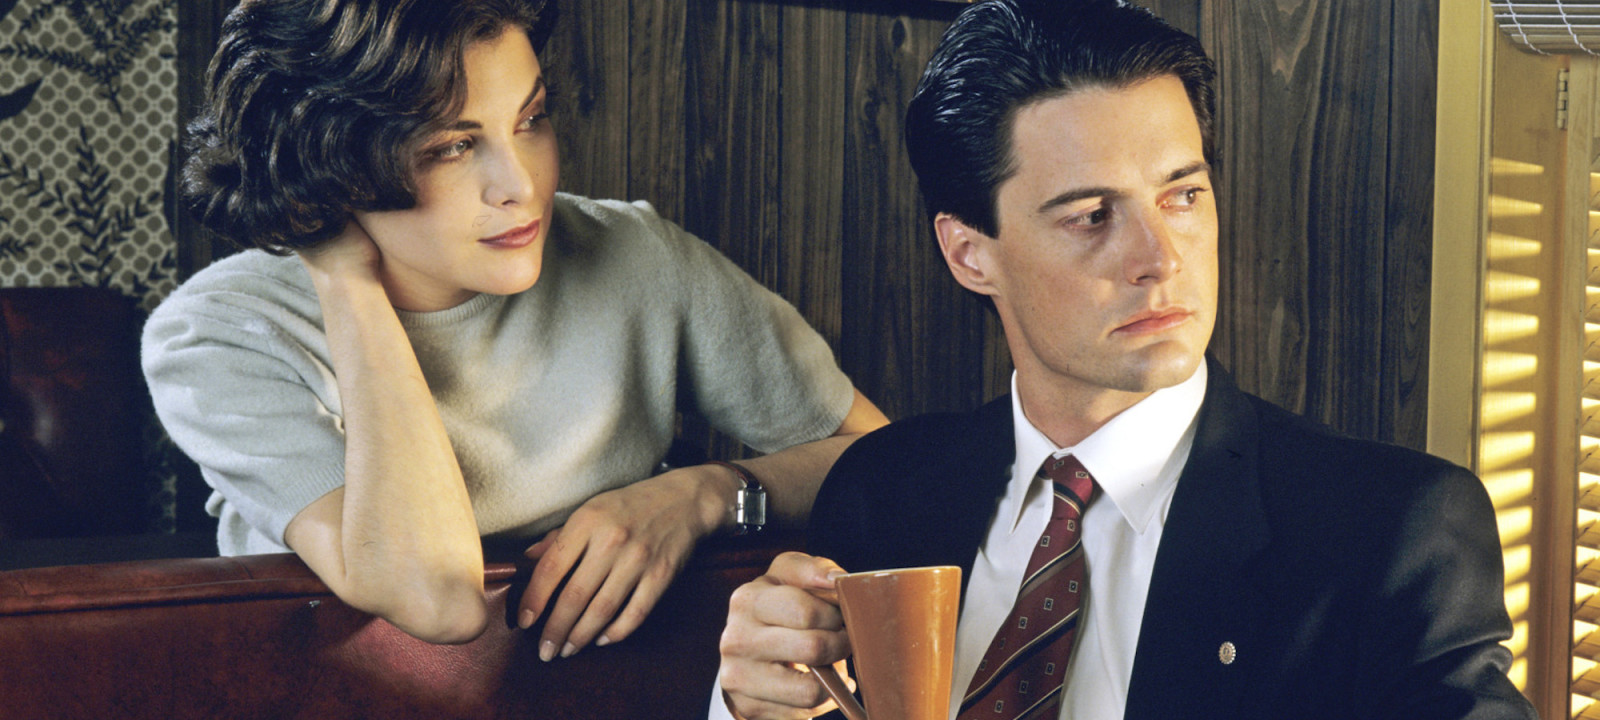 Sherilyn Fenn and Kyle Maclachlan in Twin Peaks